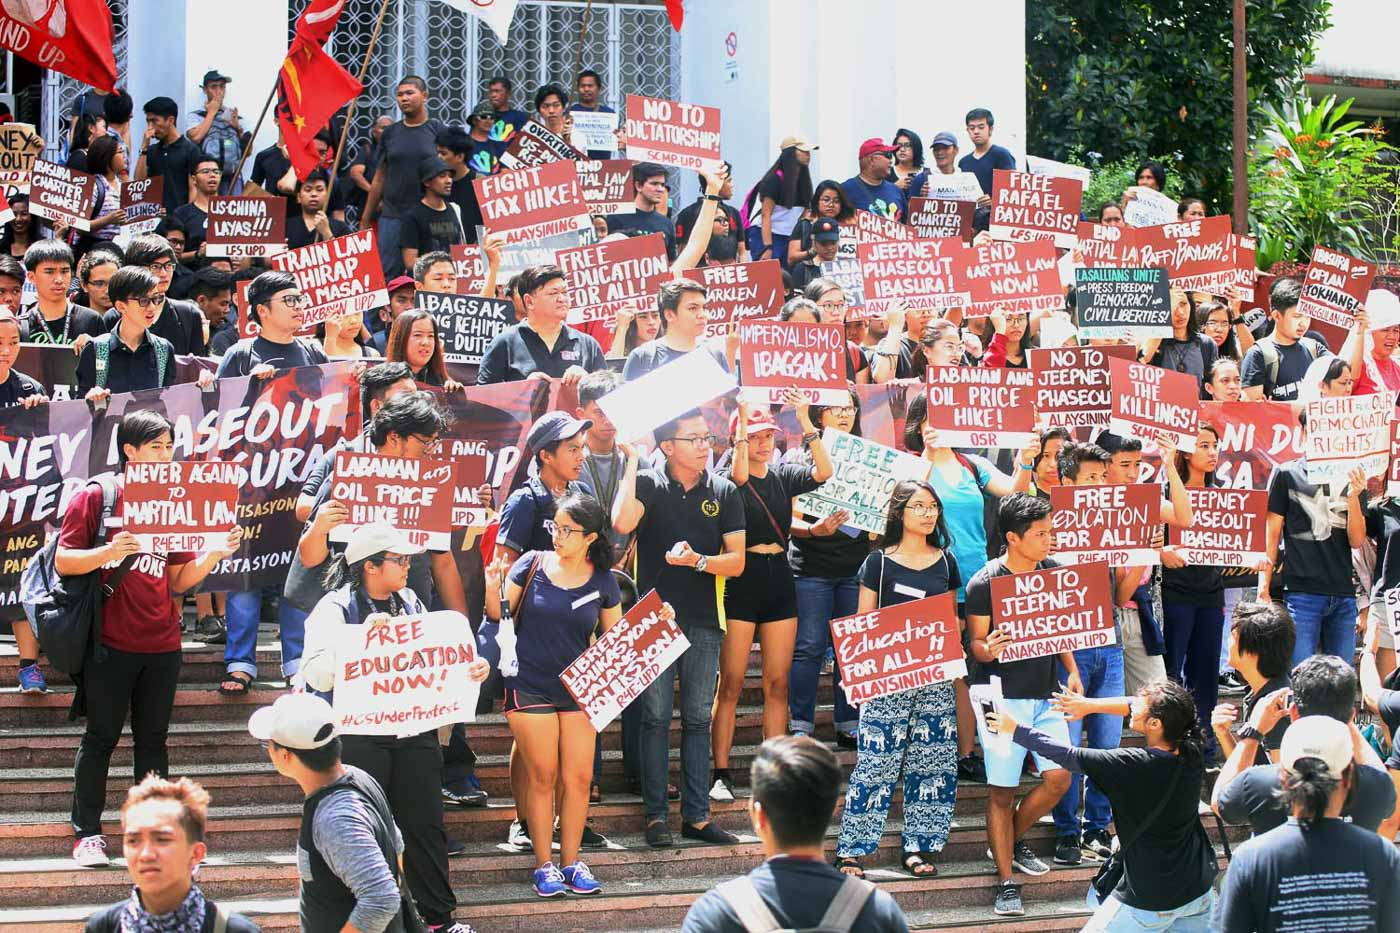 #WALKOUTPH. Students from the University of the Philippines walk out of their classes to join an anti-Duterte rally in front of UP Palma Hall in Diliman, Quezon City, on Friday, February 23 2018. The students are calling for the scrapping of the TRAIN Law and the jeepney modernization program, as well as a stop in the series of extra-judicial killings and harassment of journalists. Photo by Darren Langit/Rappler